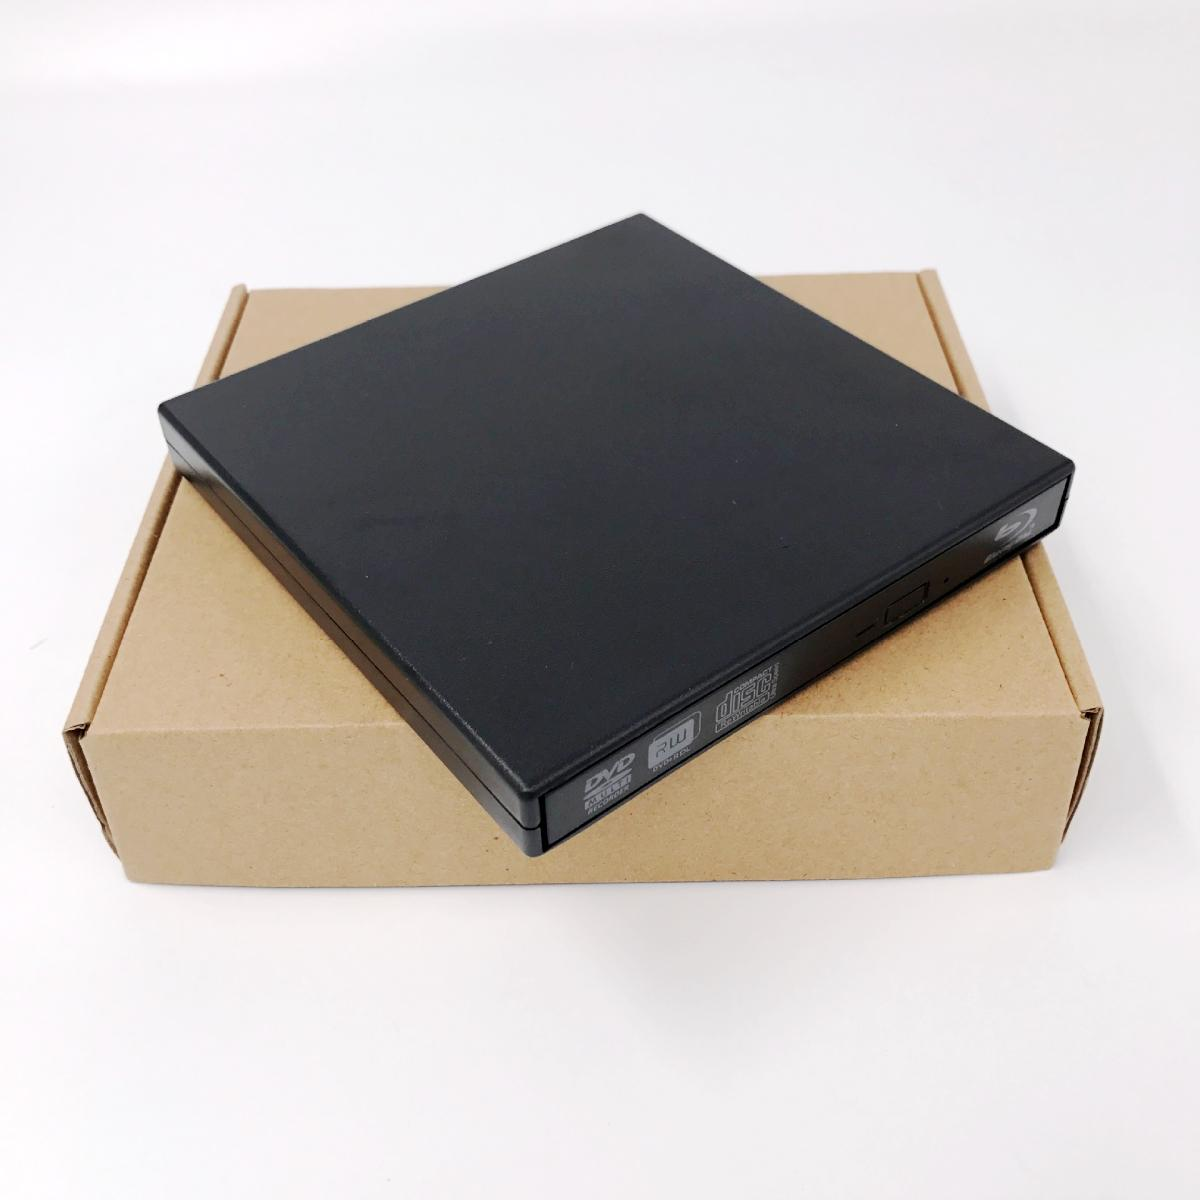 Black slim USB 2.0 External BD Blu Ray DVD RW DVD DL CD RW Drive Writer Burner For WINDOWS XP/7/8/10 Mac Desktop Laptop usb ide laptop notebook cd dvd rw burner rom drive external case enclosure no17